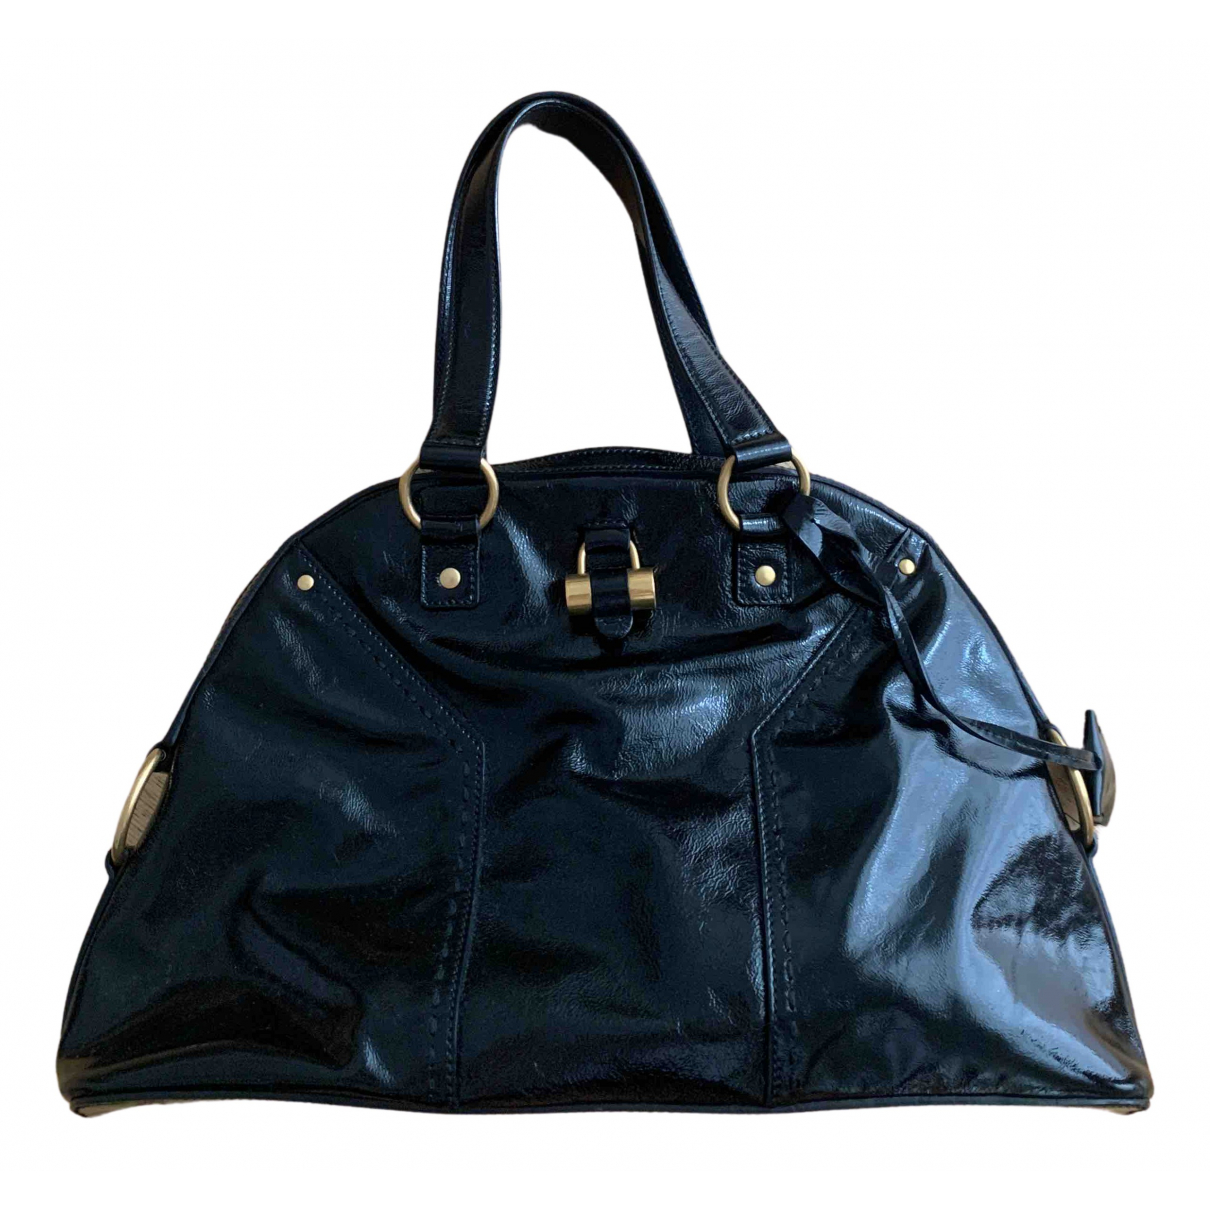 Yves Saint Laurent Muse Handtasche in  Schwarz Lackleder